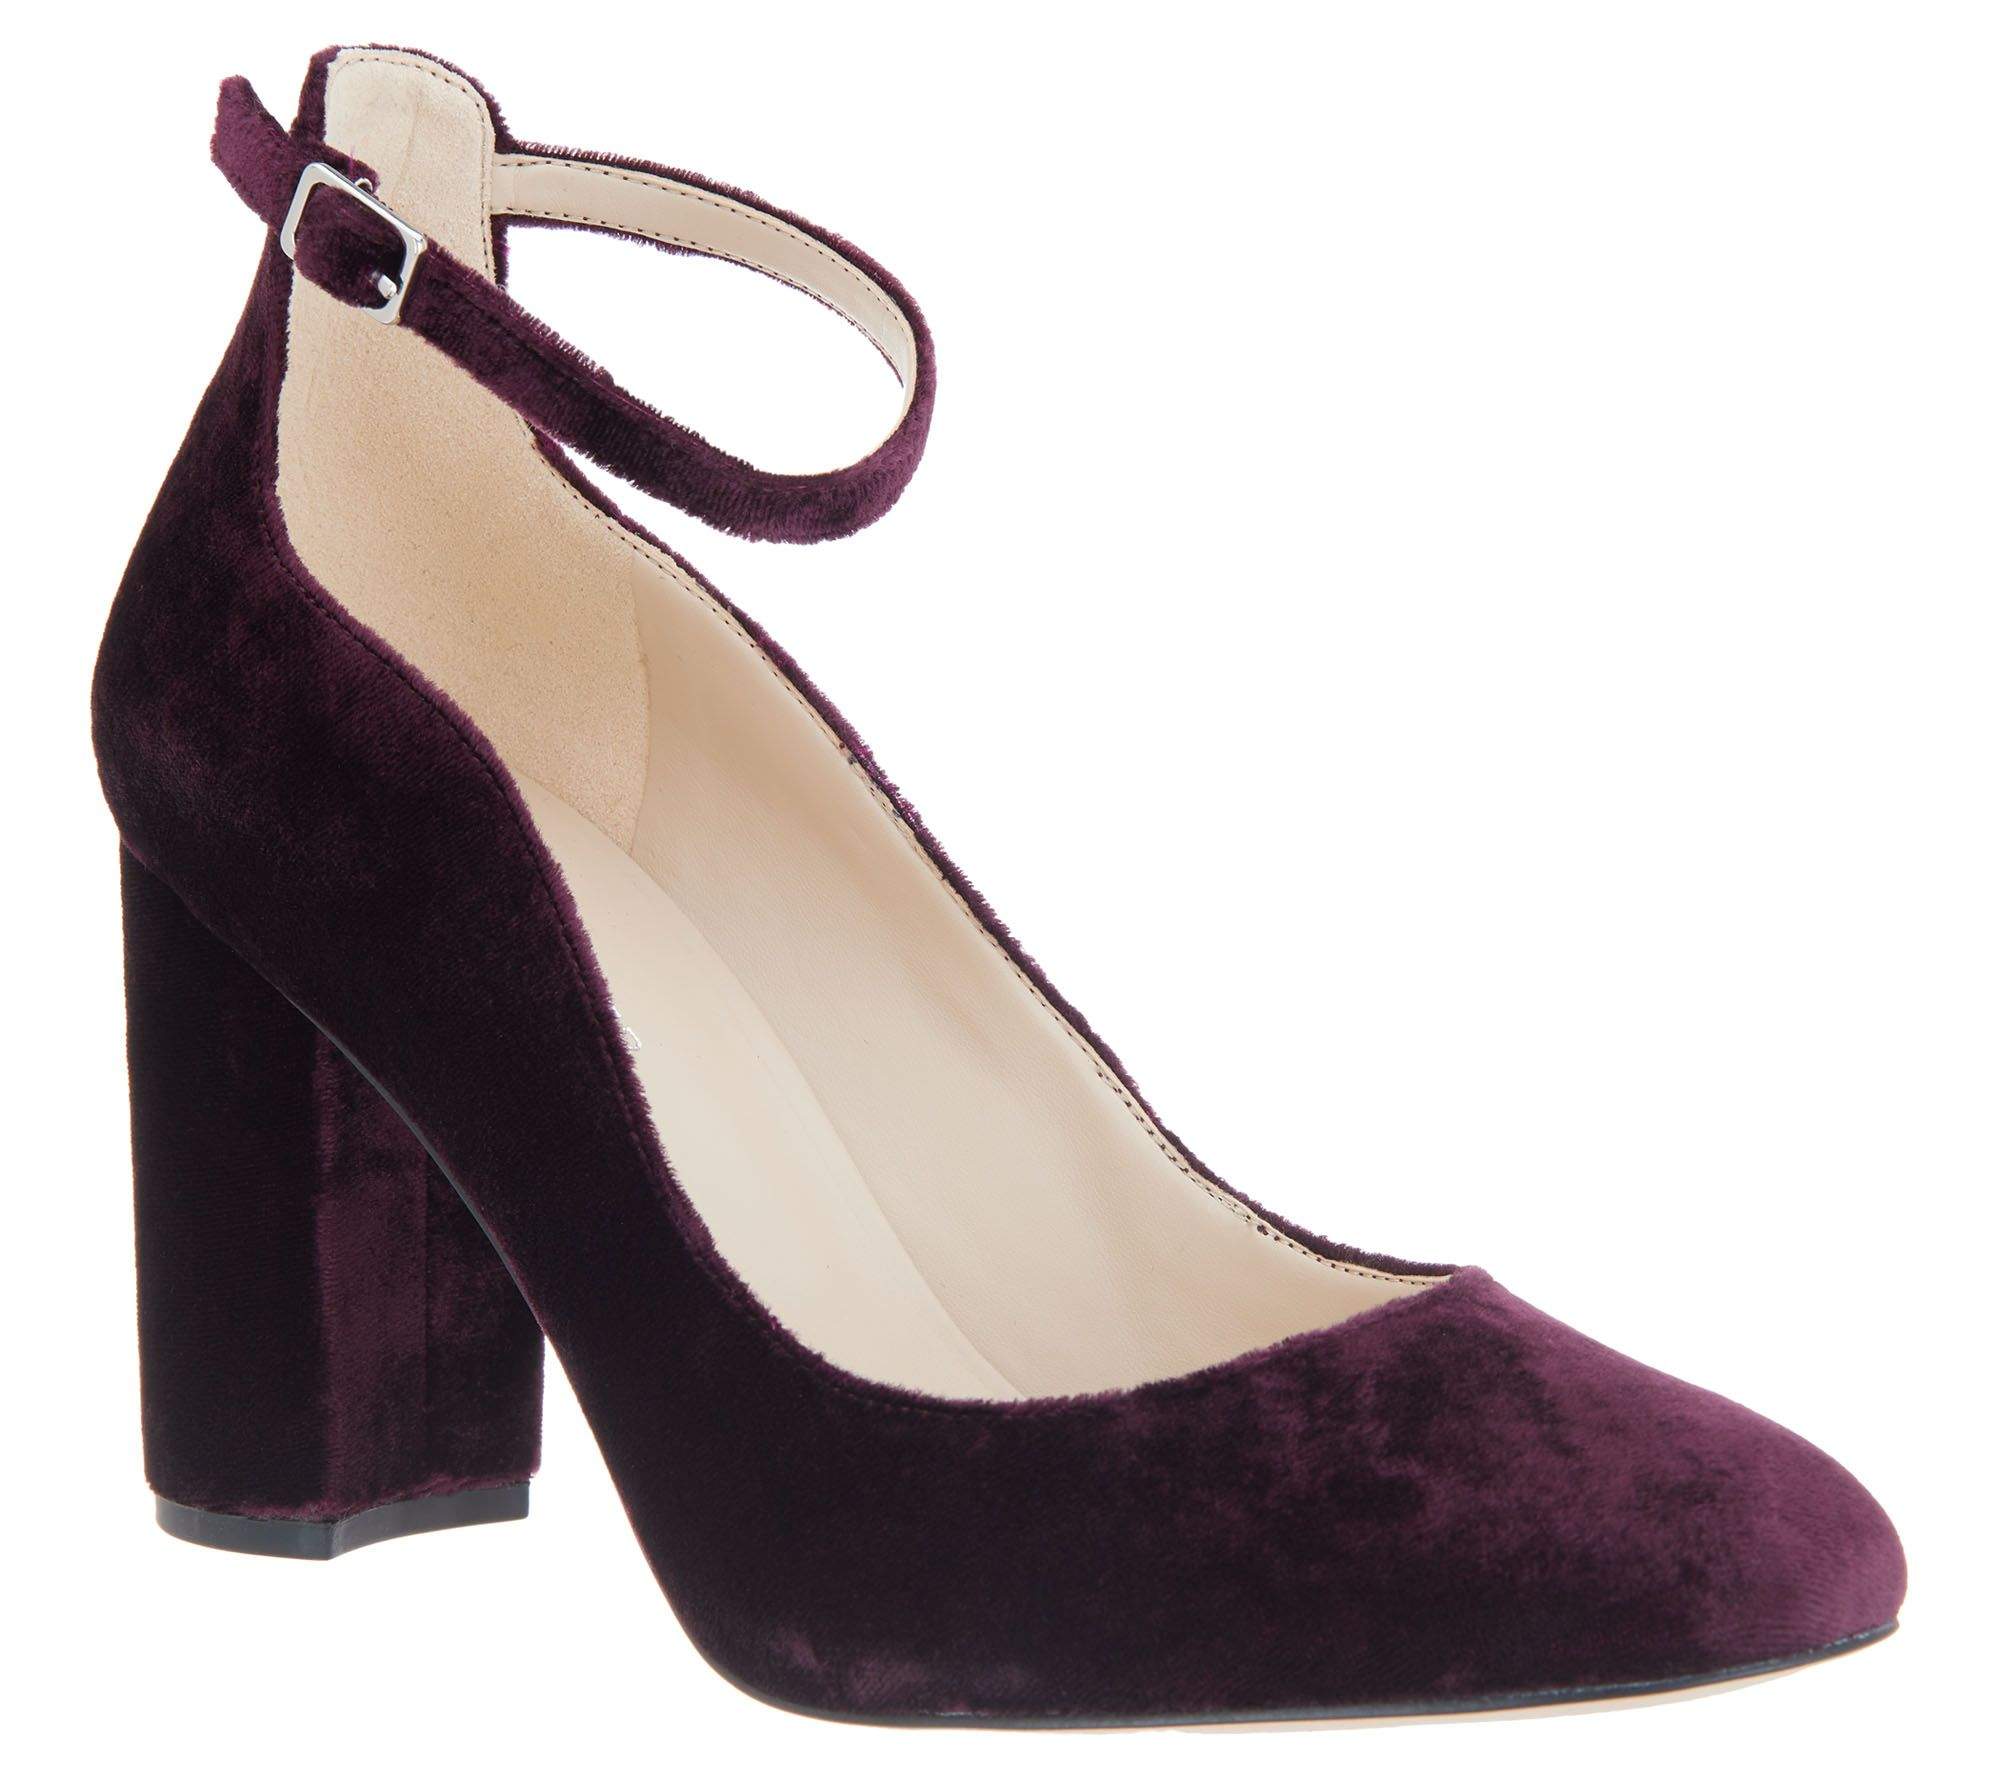 2d8f11b71a1 Marc Fisher Block Heel Pumps with Ankle Strap - Imagie2 — QVC.com